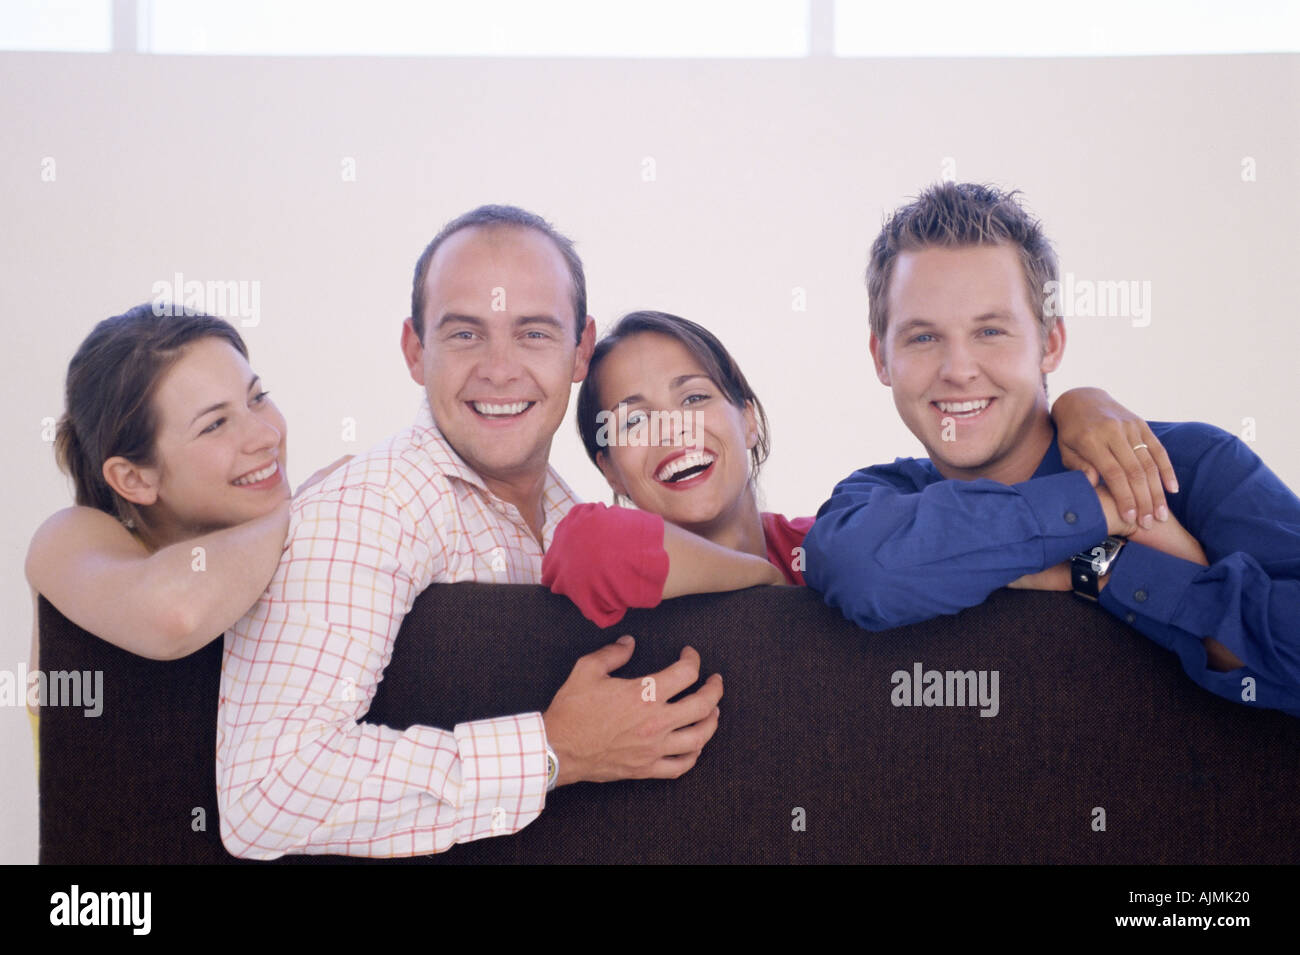 Four colleagues leaning on a divider - Stock Image